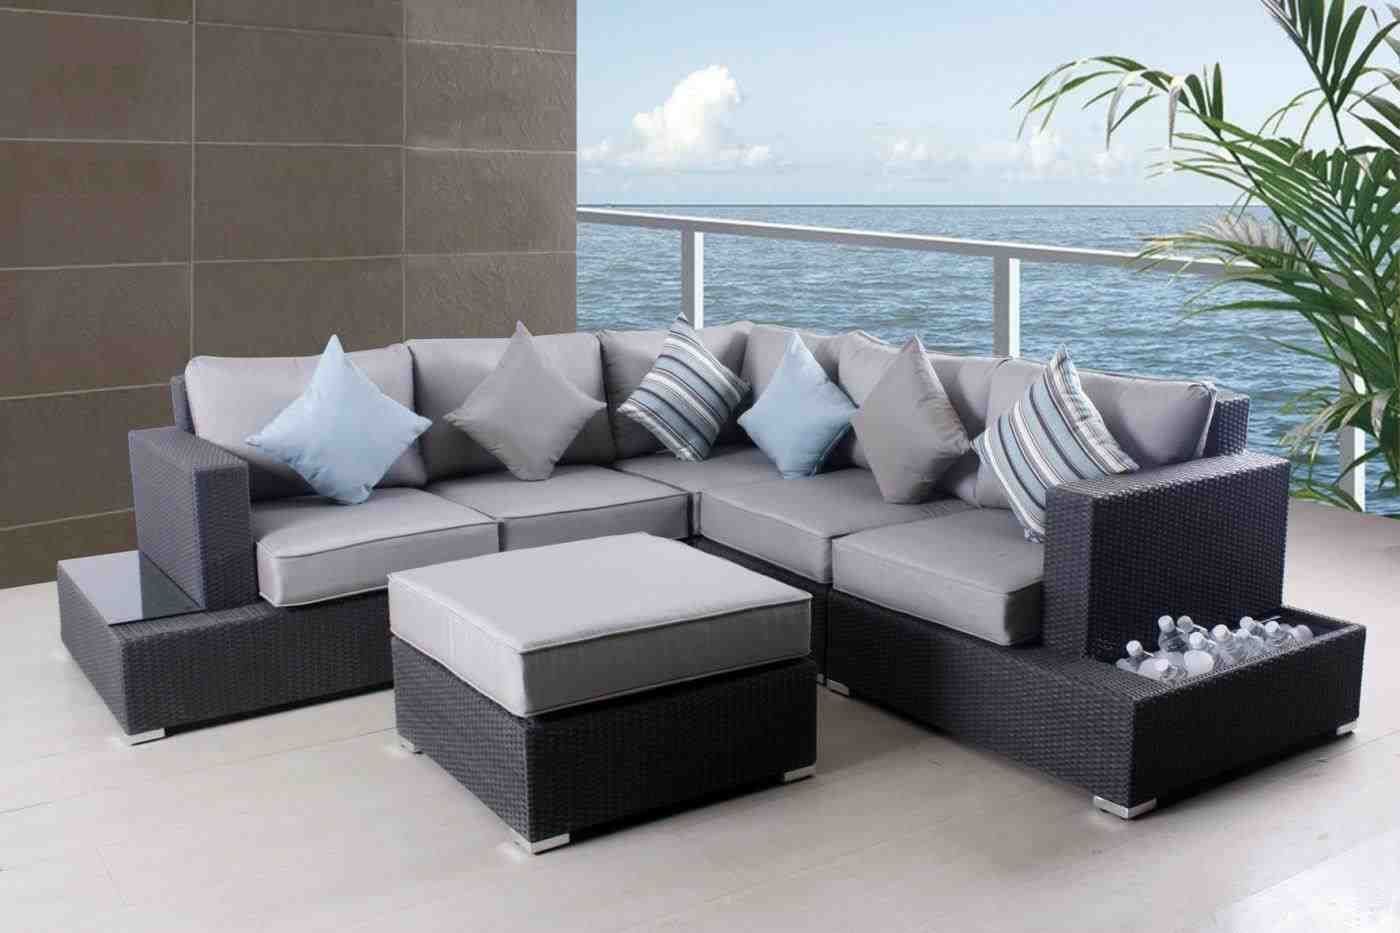 Cheap Sofas Online Australia Mission Black Leather Sofa Buy Furniture Medium Size Of Bedroom Sets For Exemplary Bargain With Kids